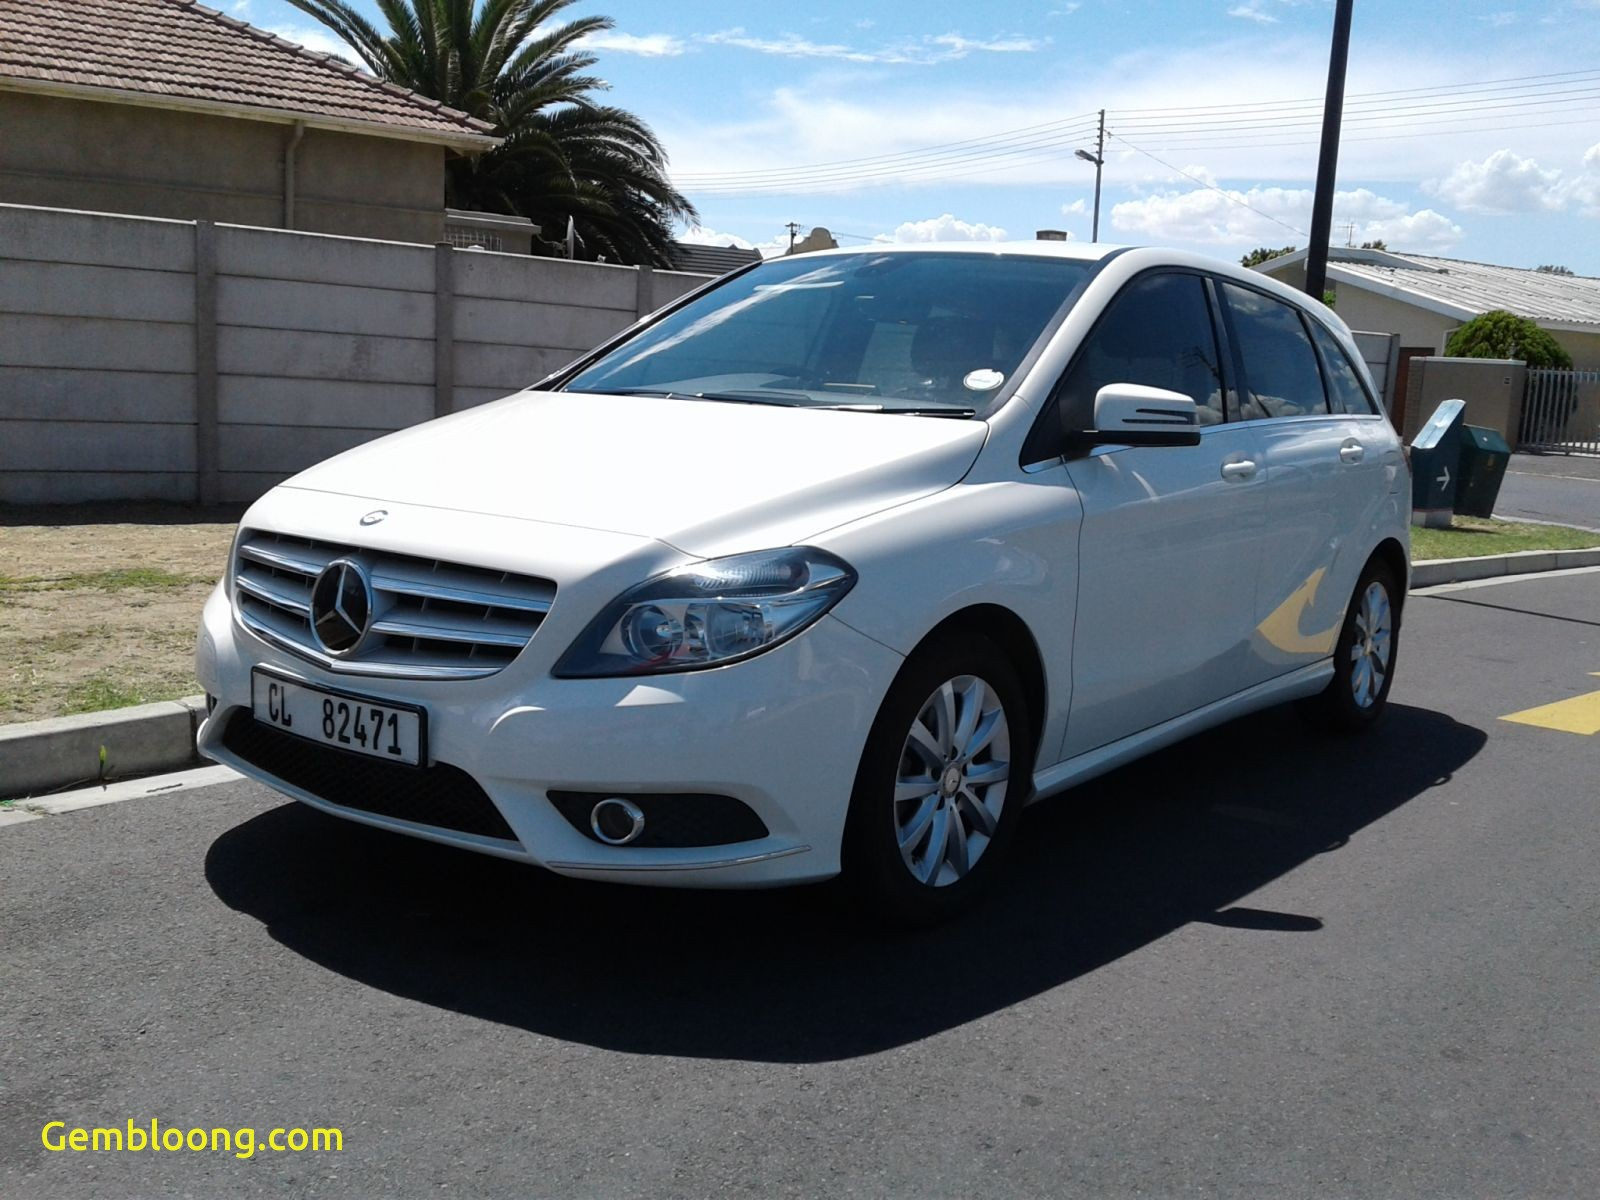 cars for sale near me 5000 elegant used cars near me under 5000